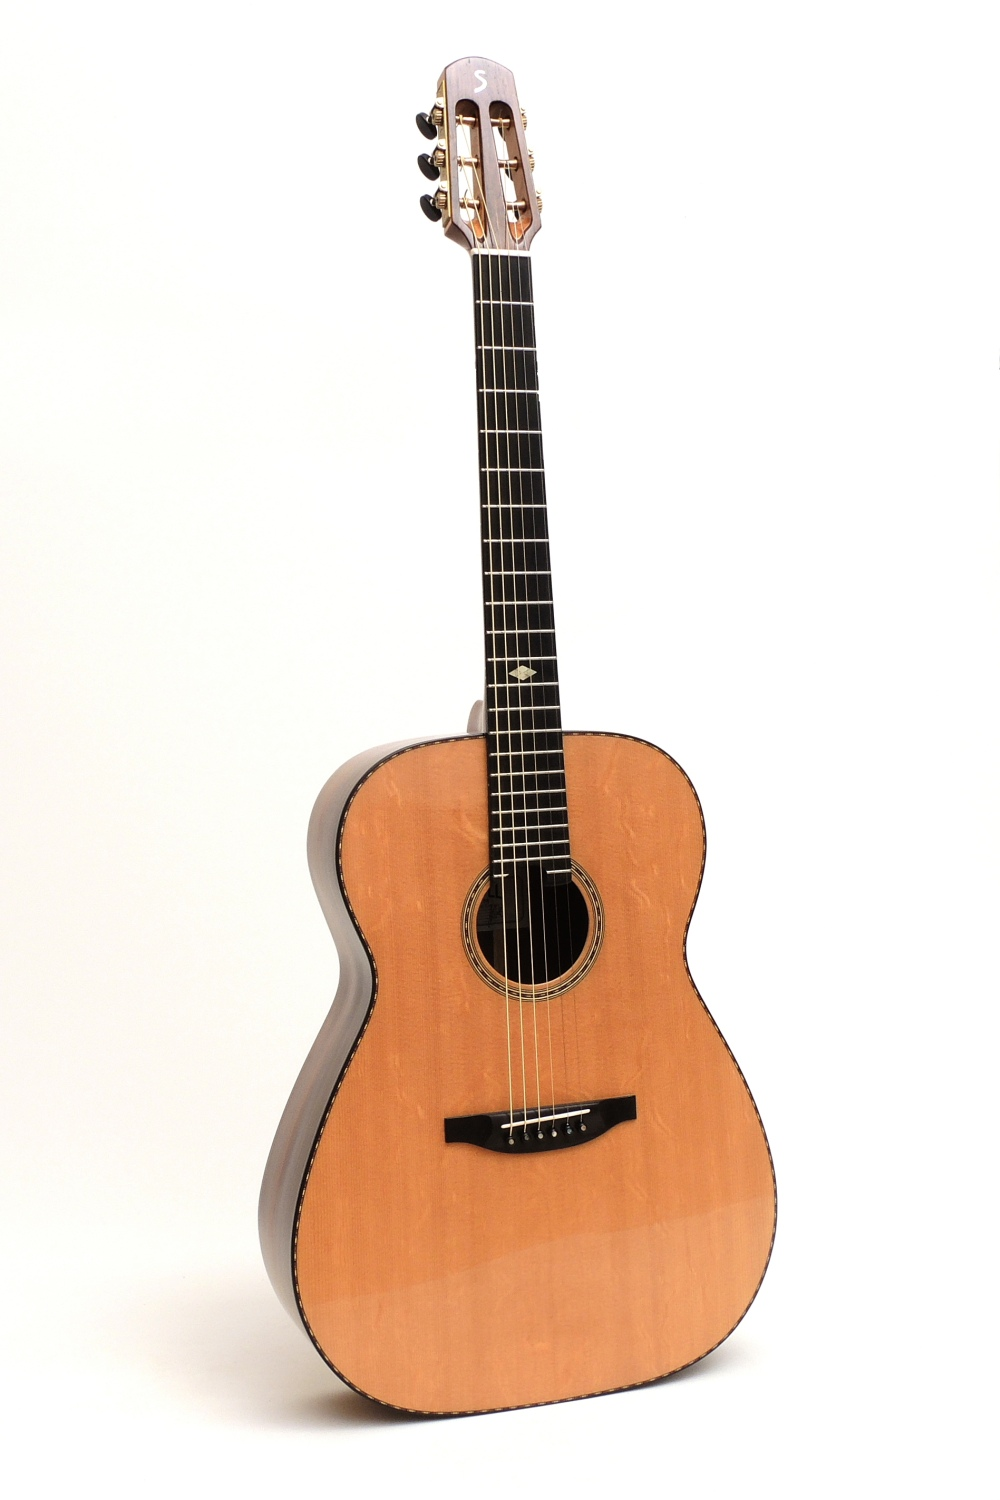 madagascar rosewood acoustic steel string guitar s-custom luthier Christian stoll